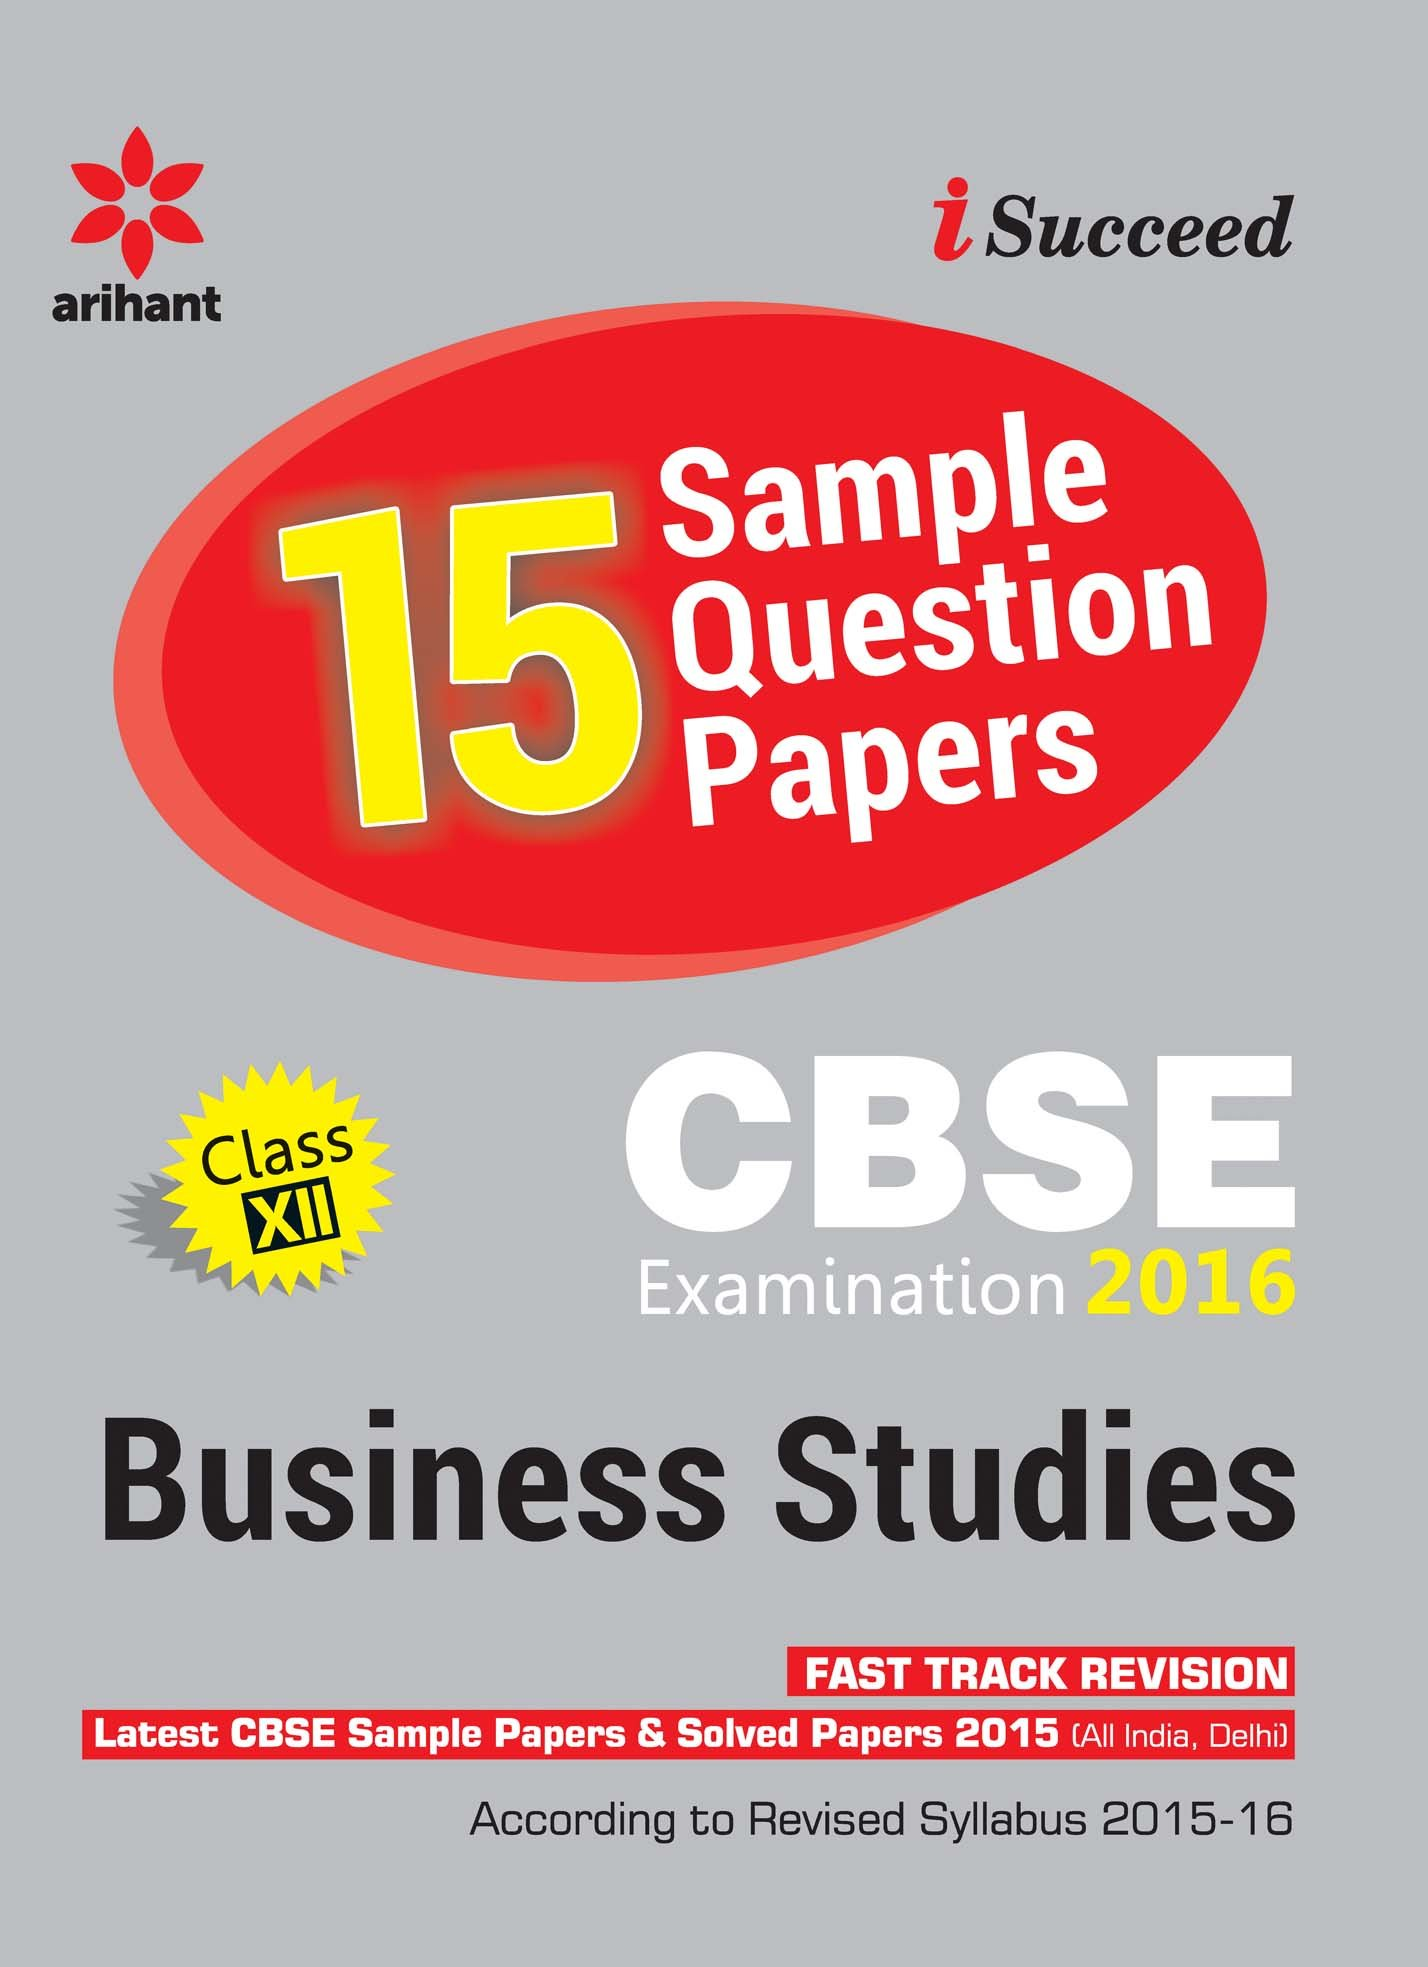 cbse sample paper business studies for class th old edition  cbse 15 sample paper business studies for class 12th old edition in akanksha sharma books